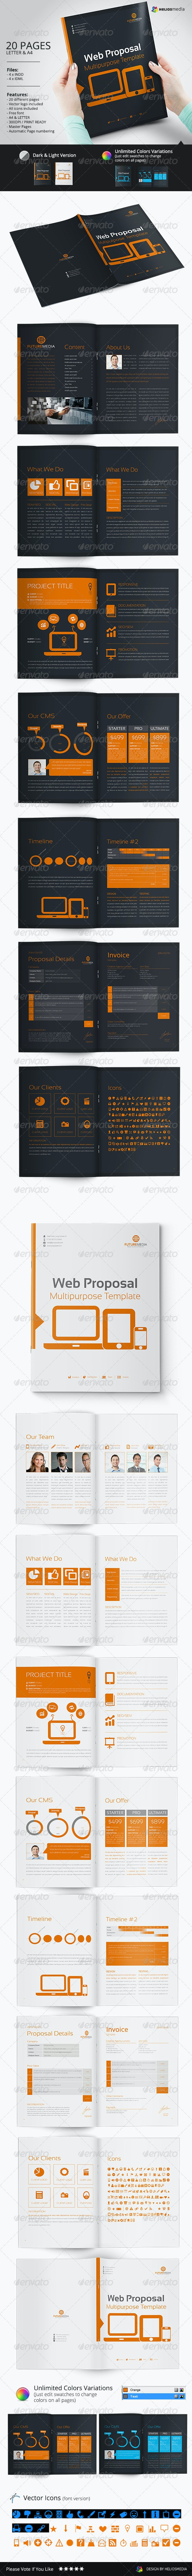 Web Proposal Template - Proposals & Invoices Stationery